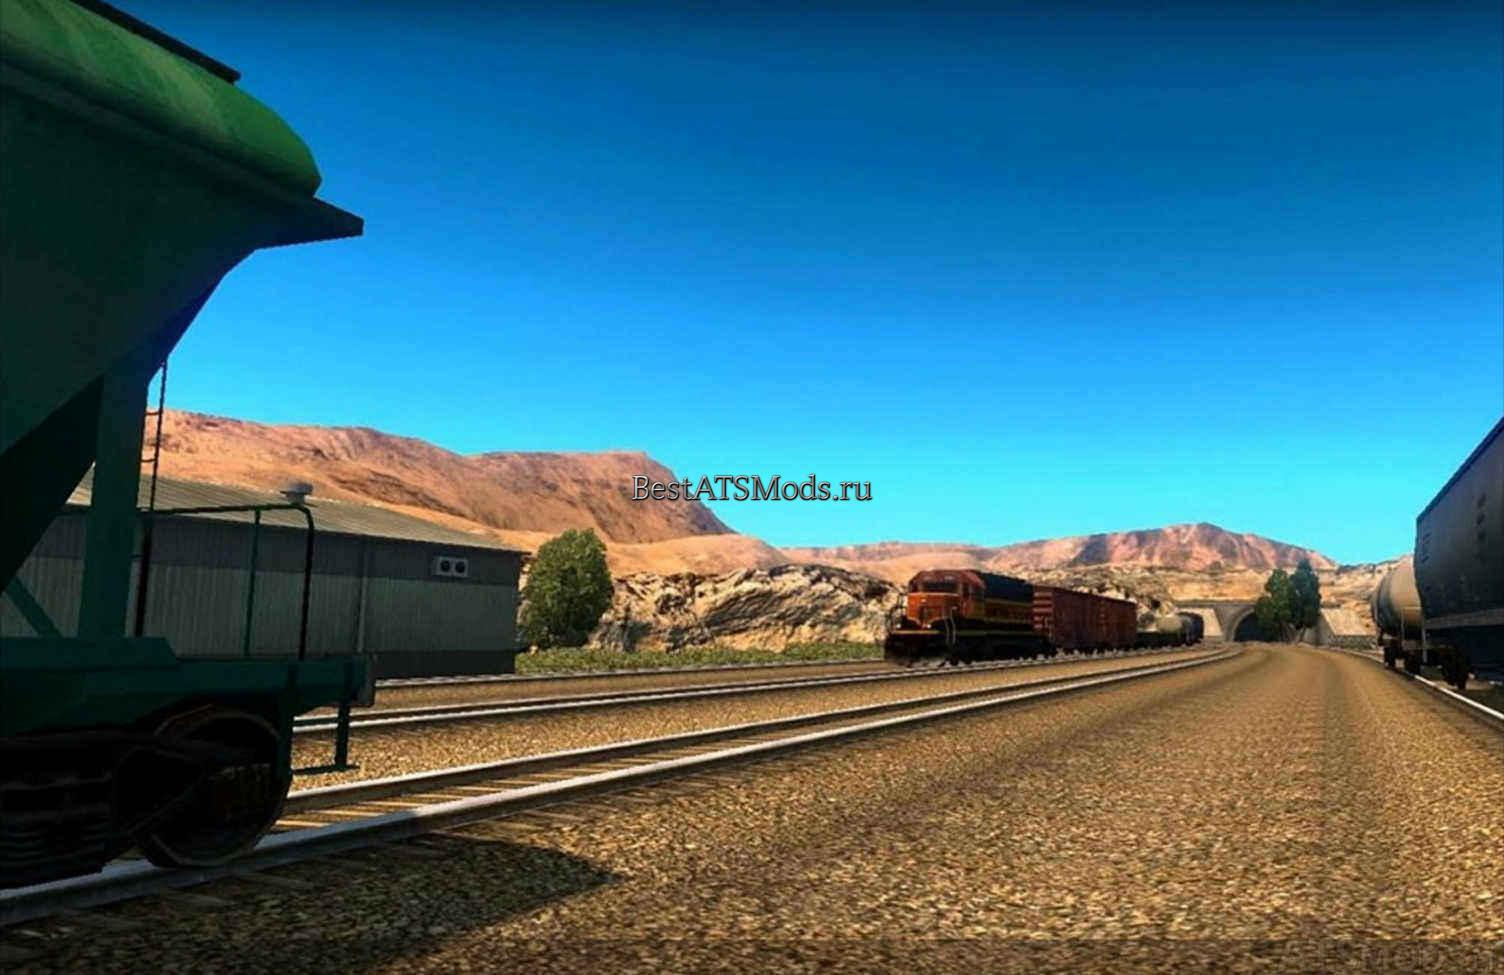 rsz_Мод_звук_поезда_improved_train_sound_v2_for_american_truck_simulator